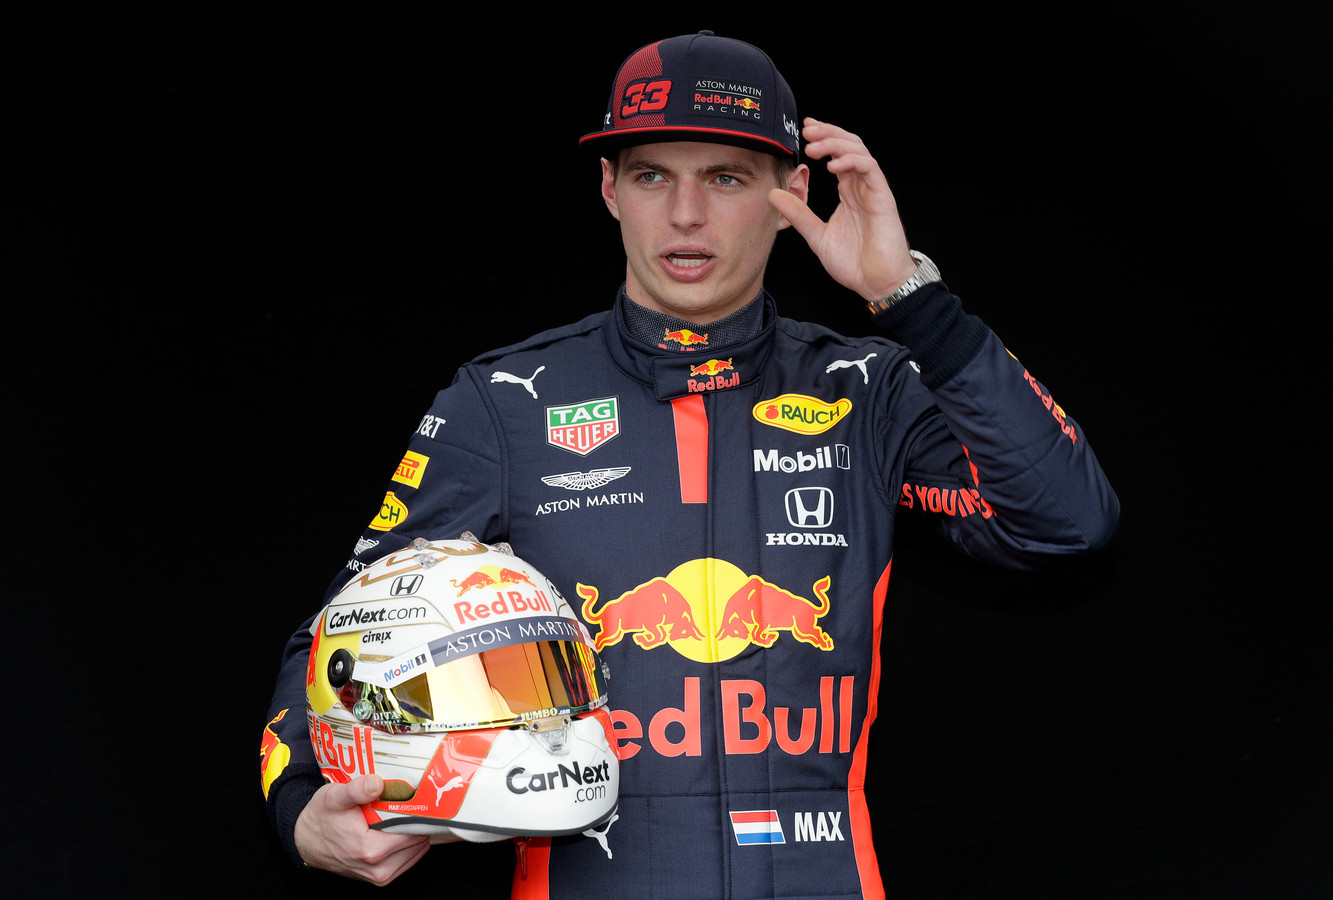 Red Bull driver Max Verstappen of the Netherlands poses for a photo at the Australian Formula One Grand Prix in Melbourne, Thursday, March 12, 2020. (AP Photo/Rick Rycroft)